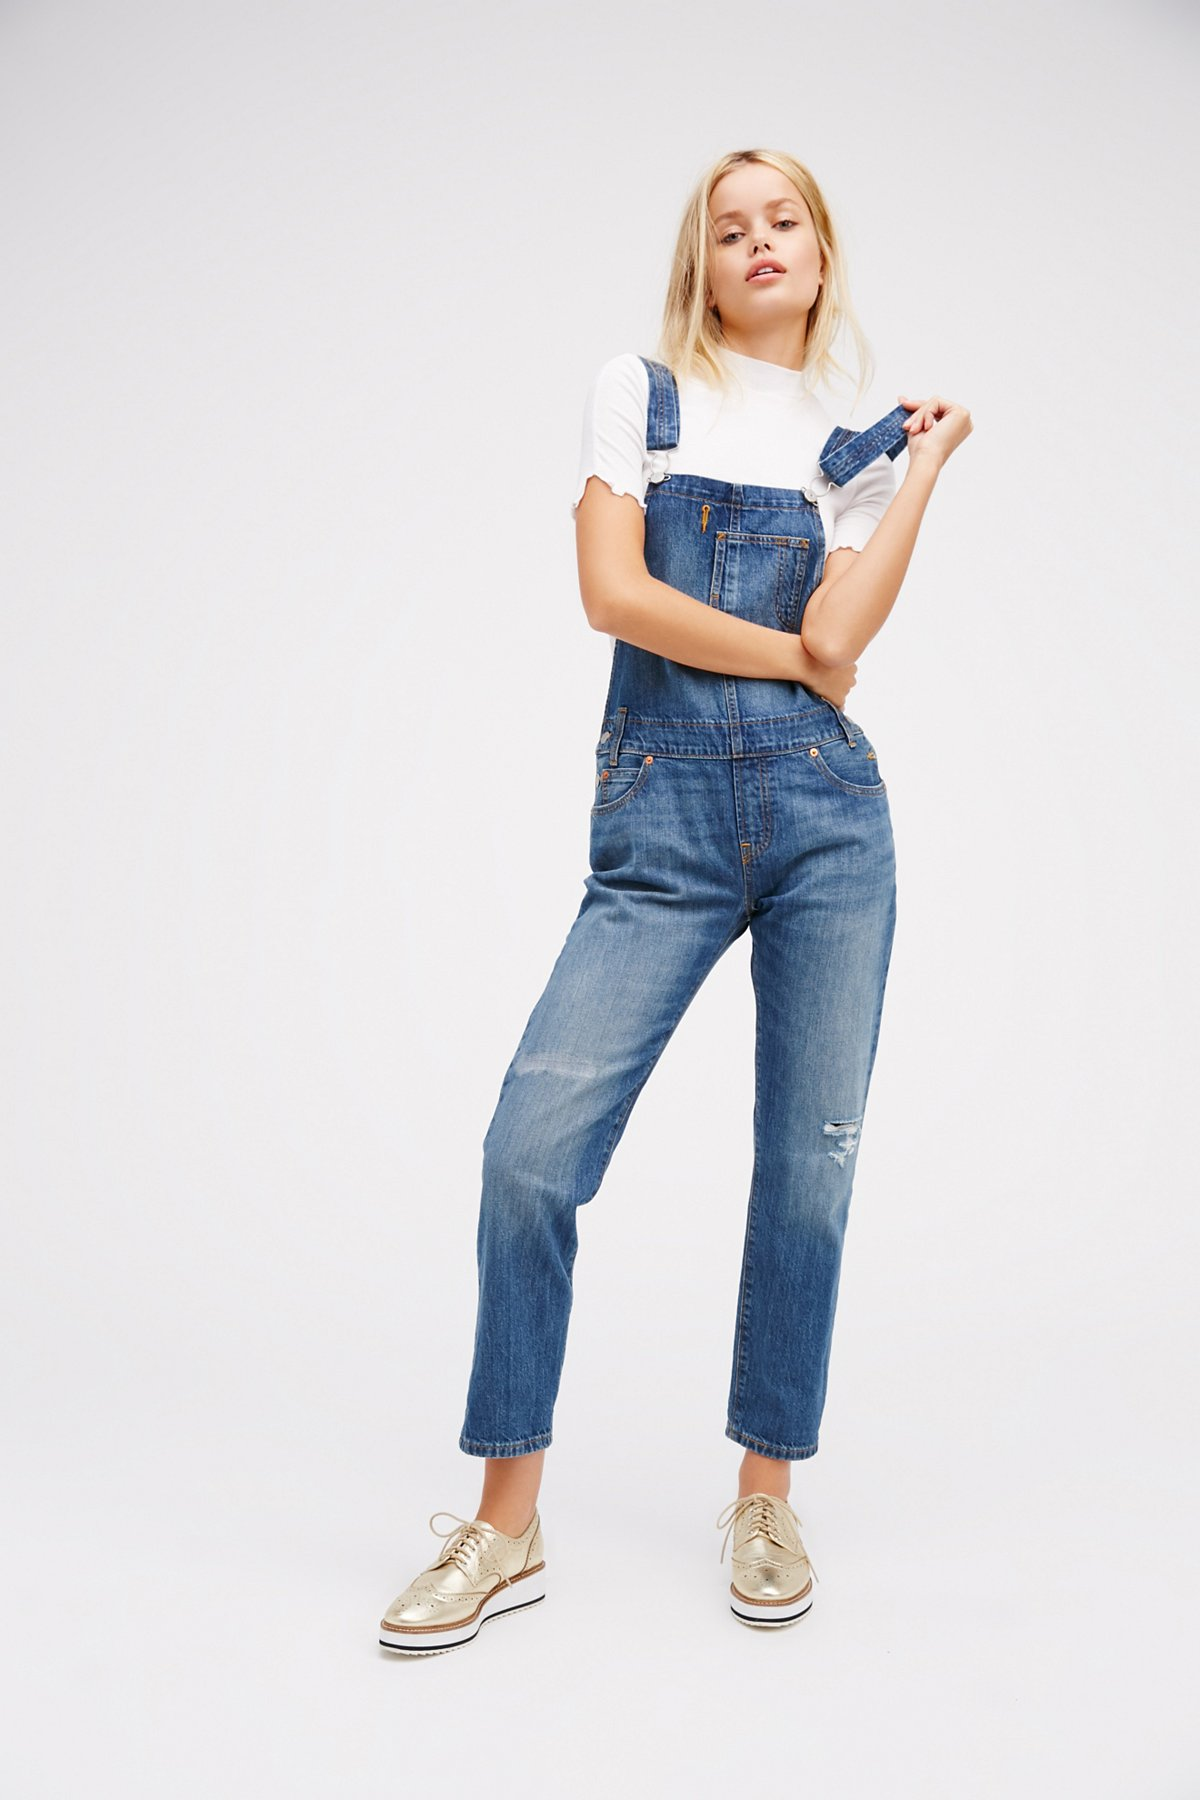 Levi's Heritage Dungarees